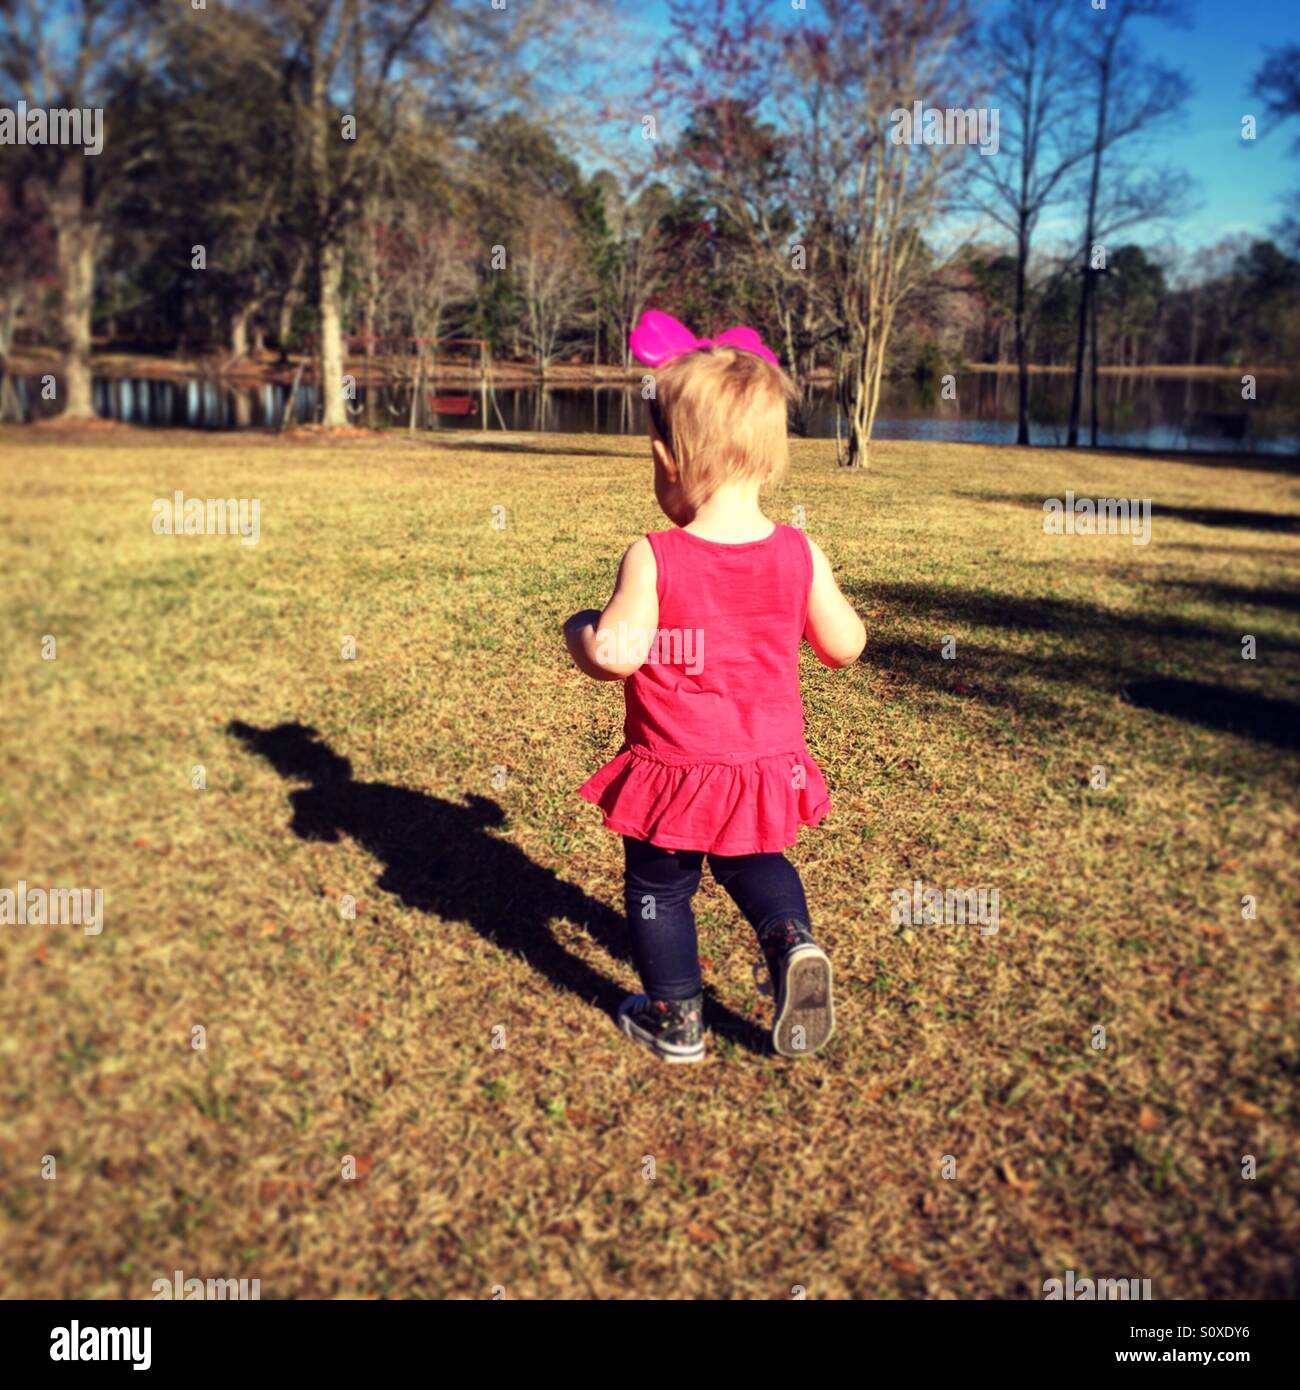 Baby girl outside chasing shadow - Stock Image